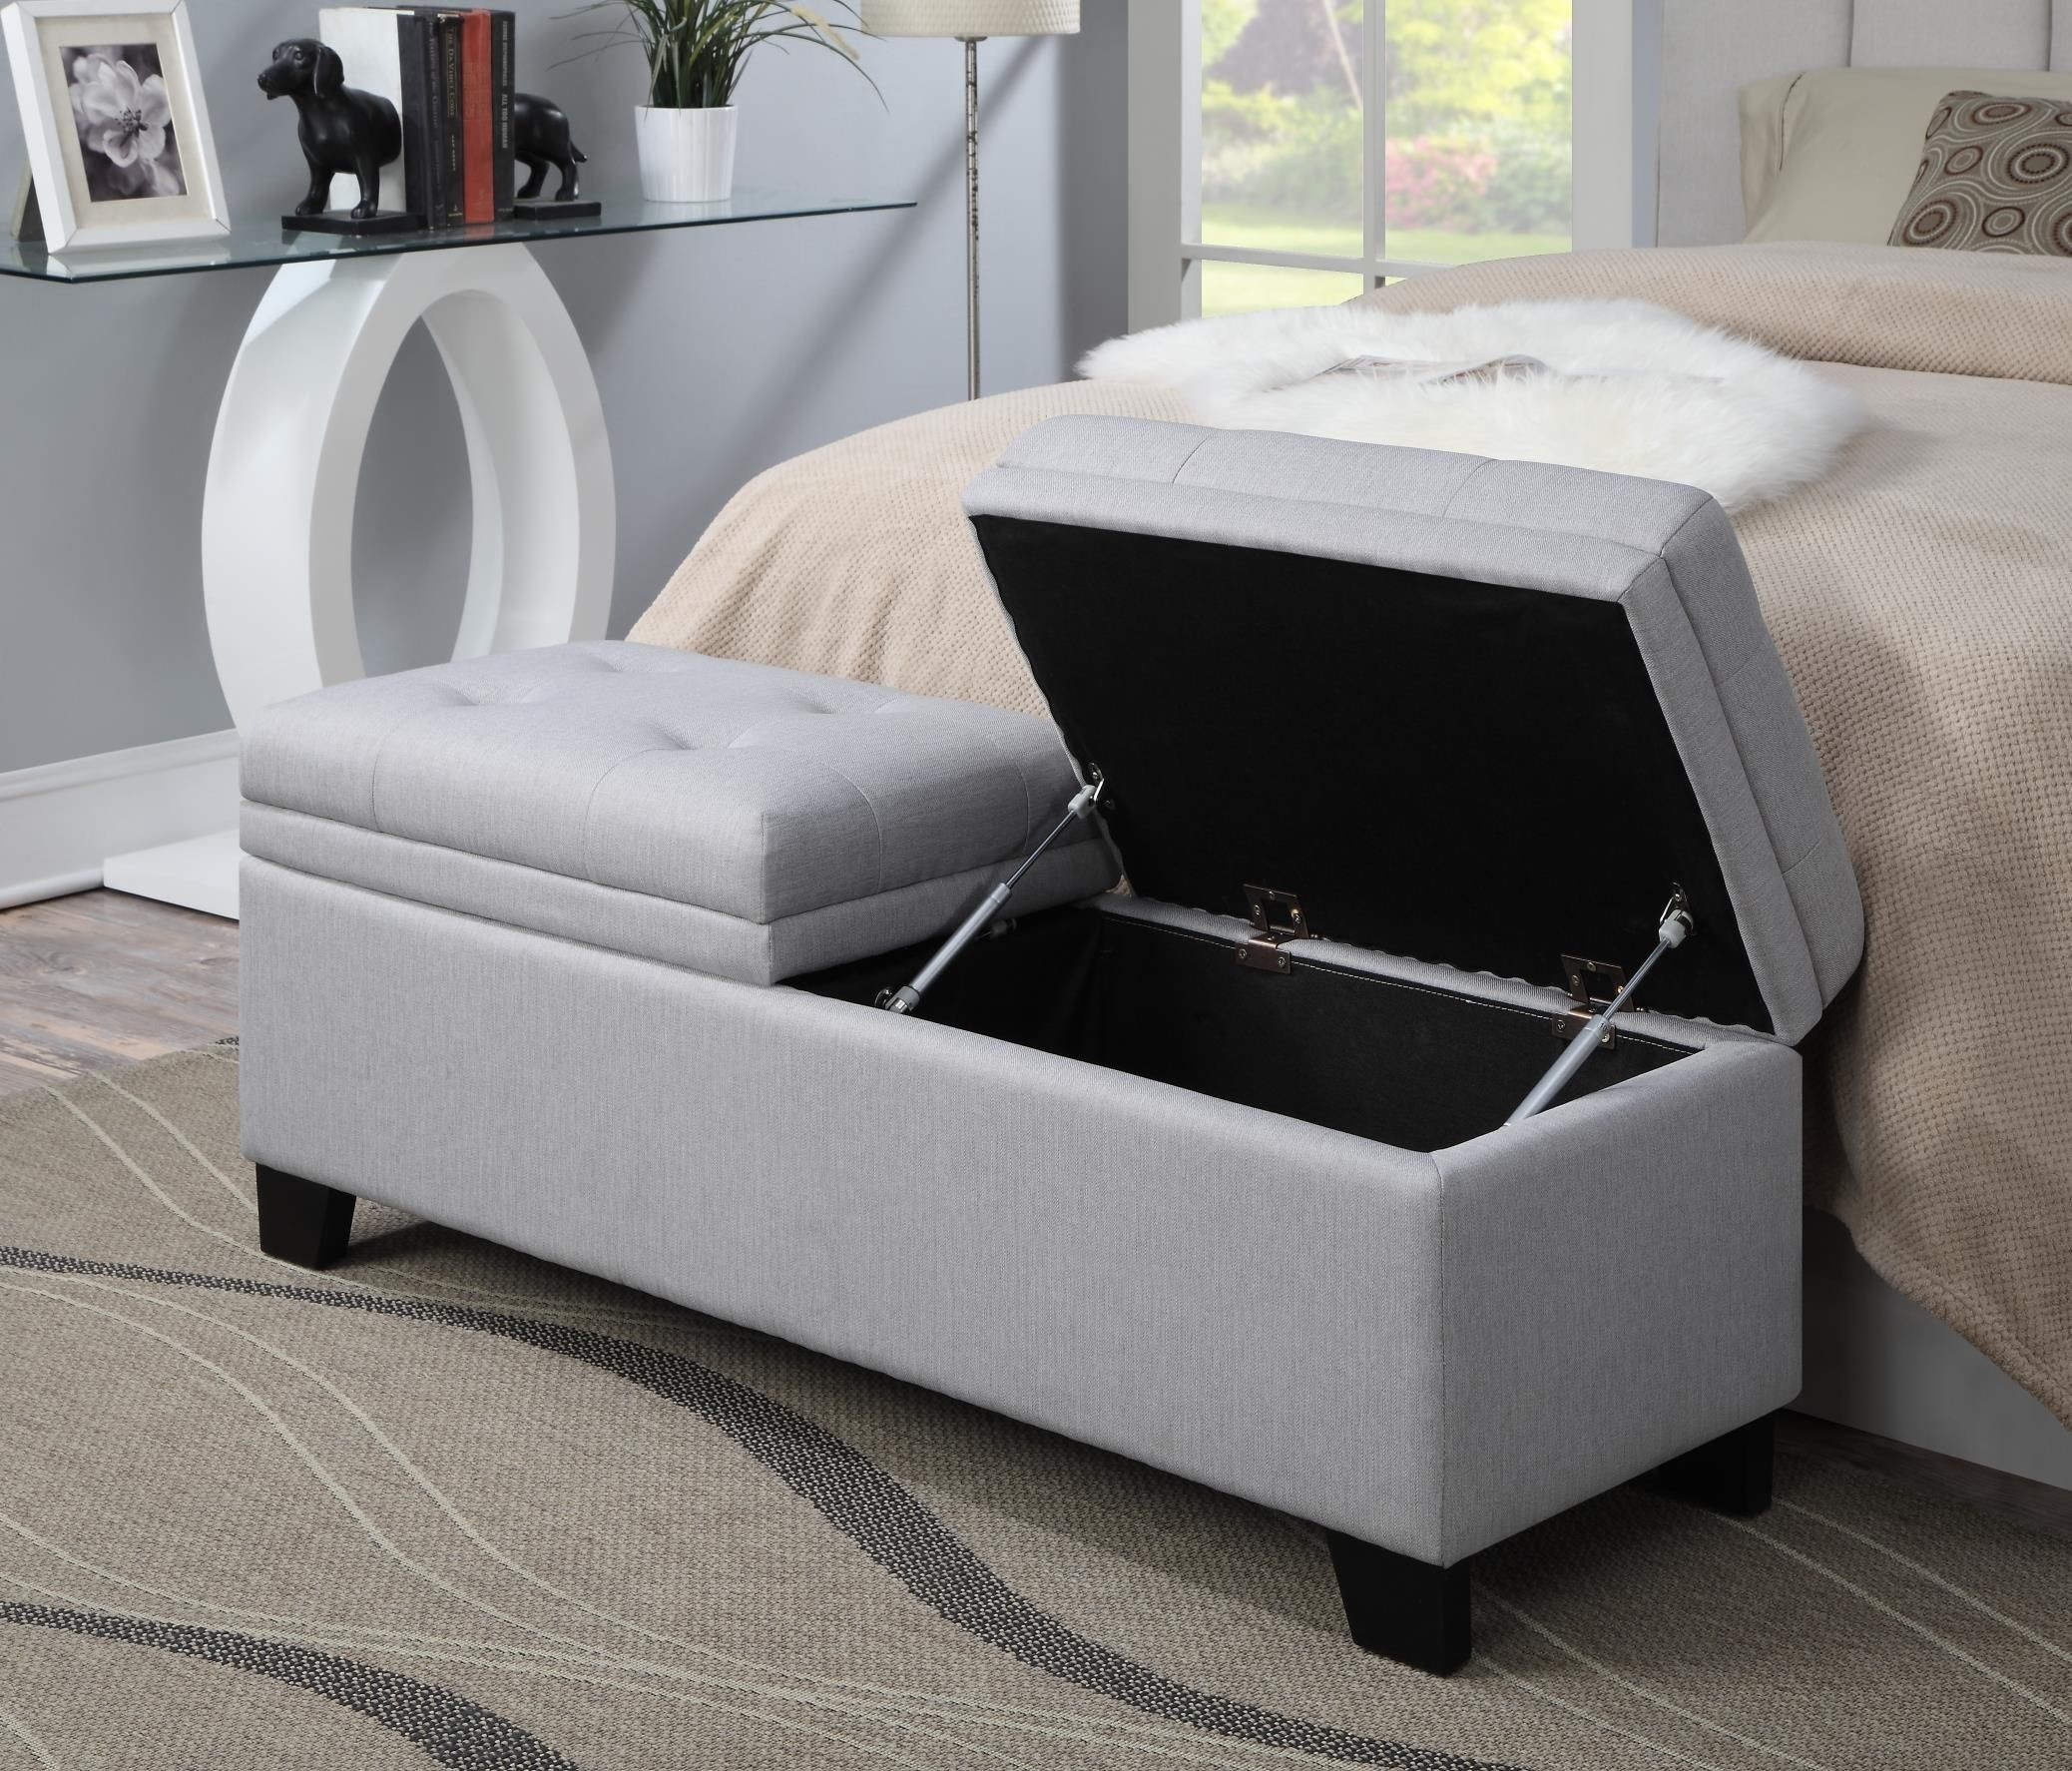 Trespass Marmor Upholstered Storage Bed Bench From Pulaski Ds 2281 683 Coleman Furniture